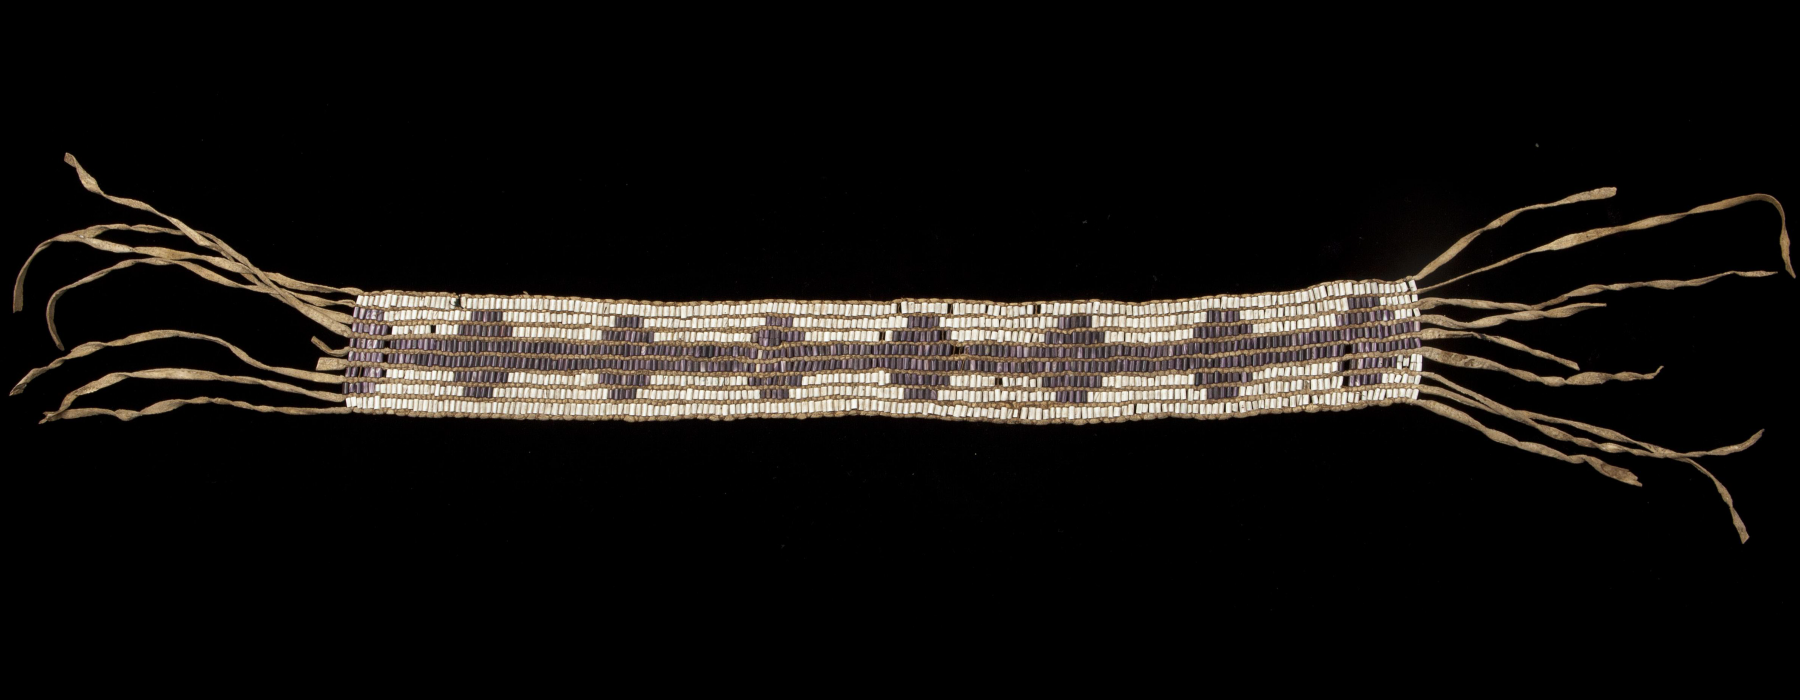 Wampum belt; Northeastern North America; 18th century Shell, leather; 116 x 8 cm. RMV 364-1; purchased from dealer Charles Jamrach, London, 1883